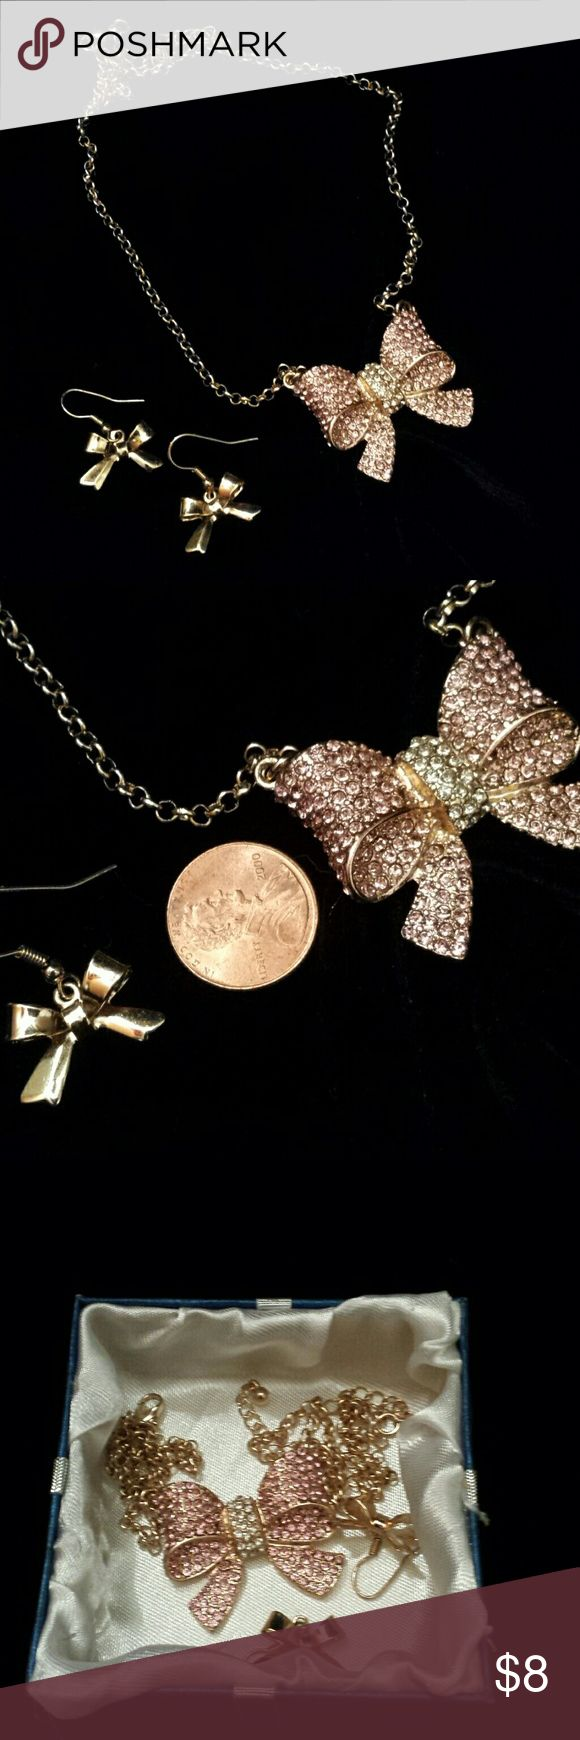 Pink Pave` Rhinestone Bow Necklace And Earrings